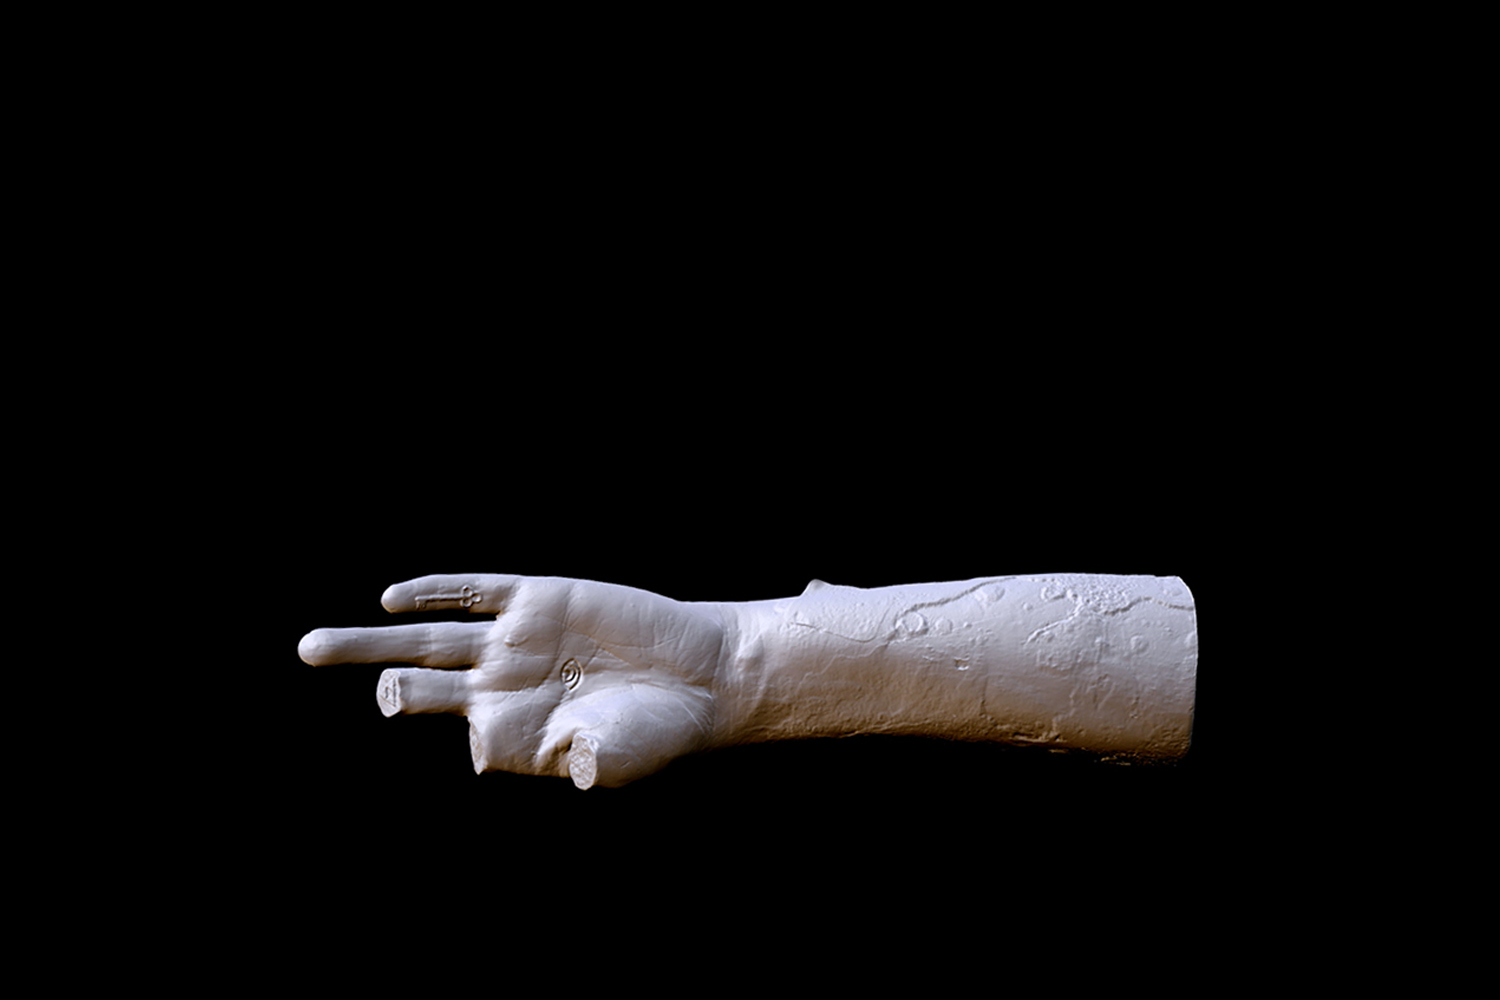 Andrea Zucchini, Participation Mystique, 2016. Video still of CGI animation of scanned and digitally altered artefact.